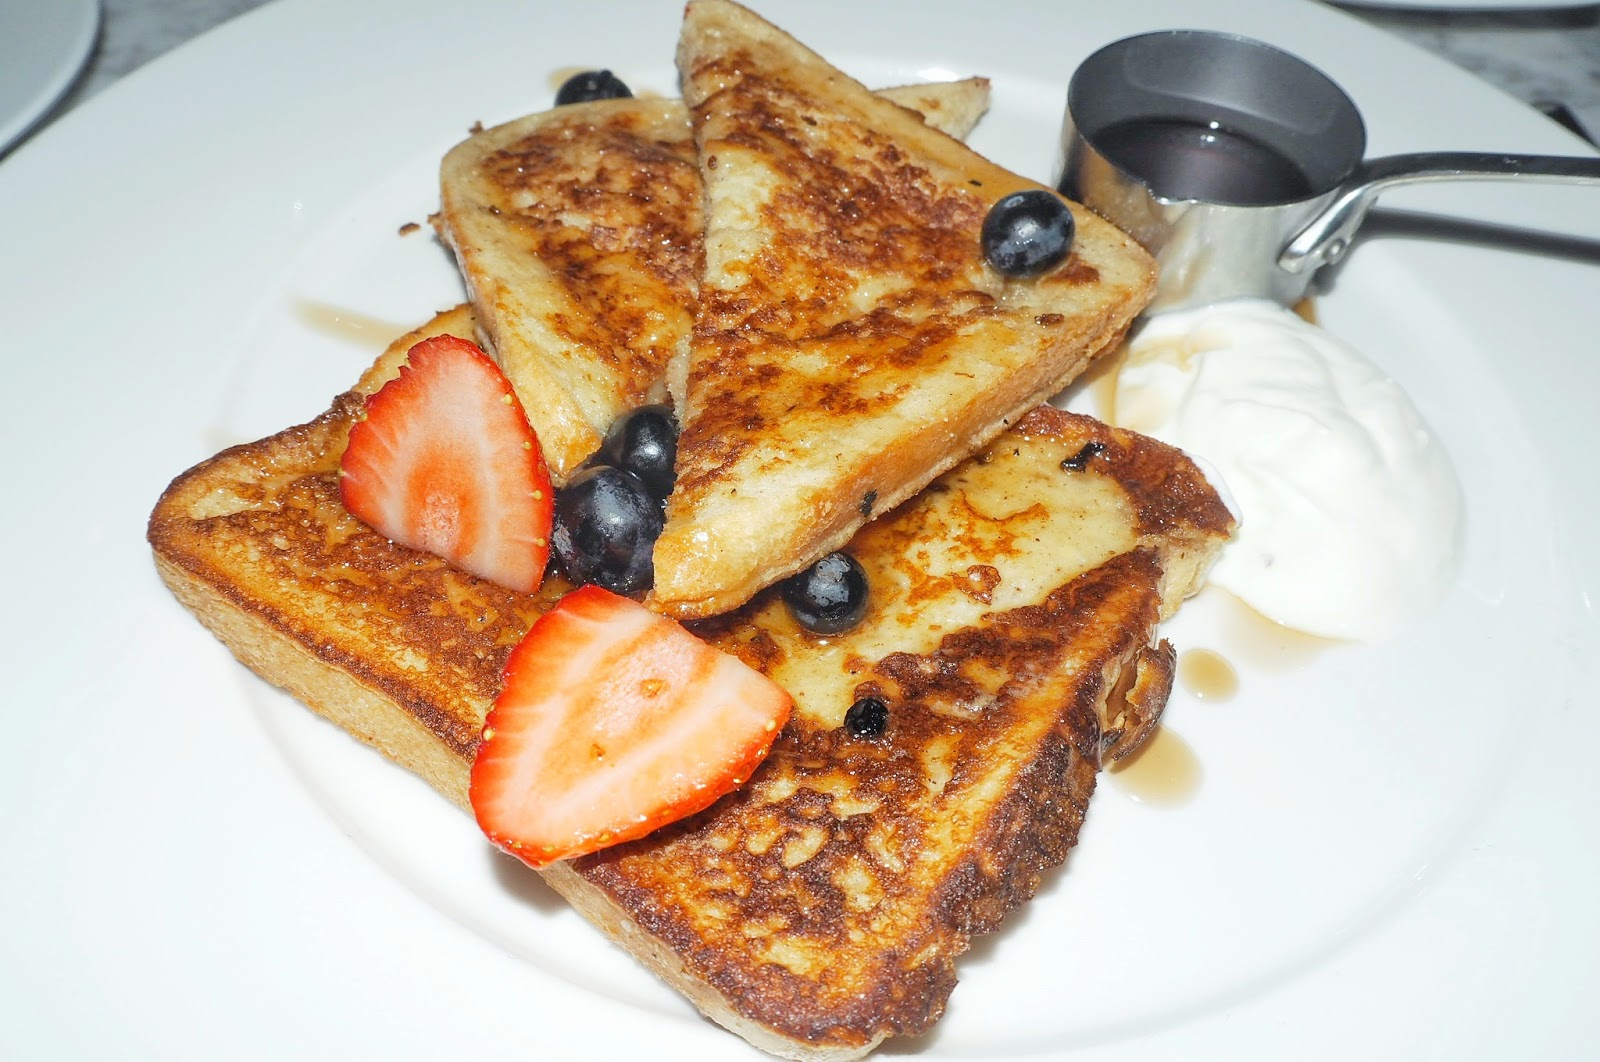 Strawberry and blueberry French toast at Dalloway Terrace